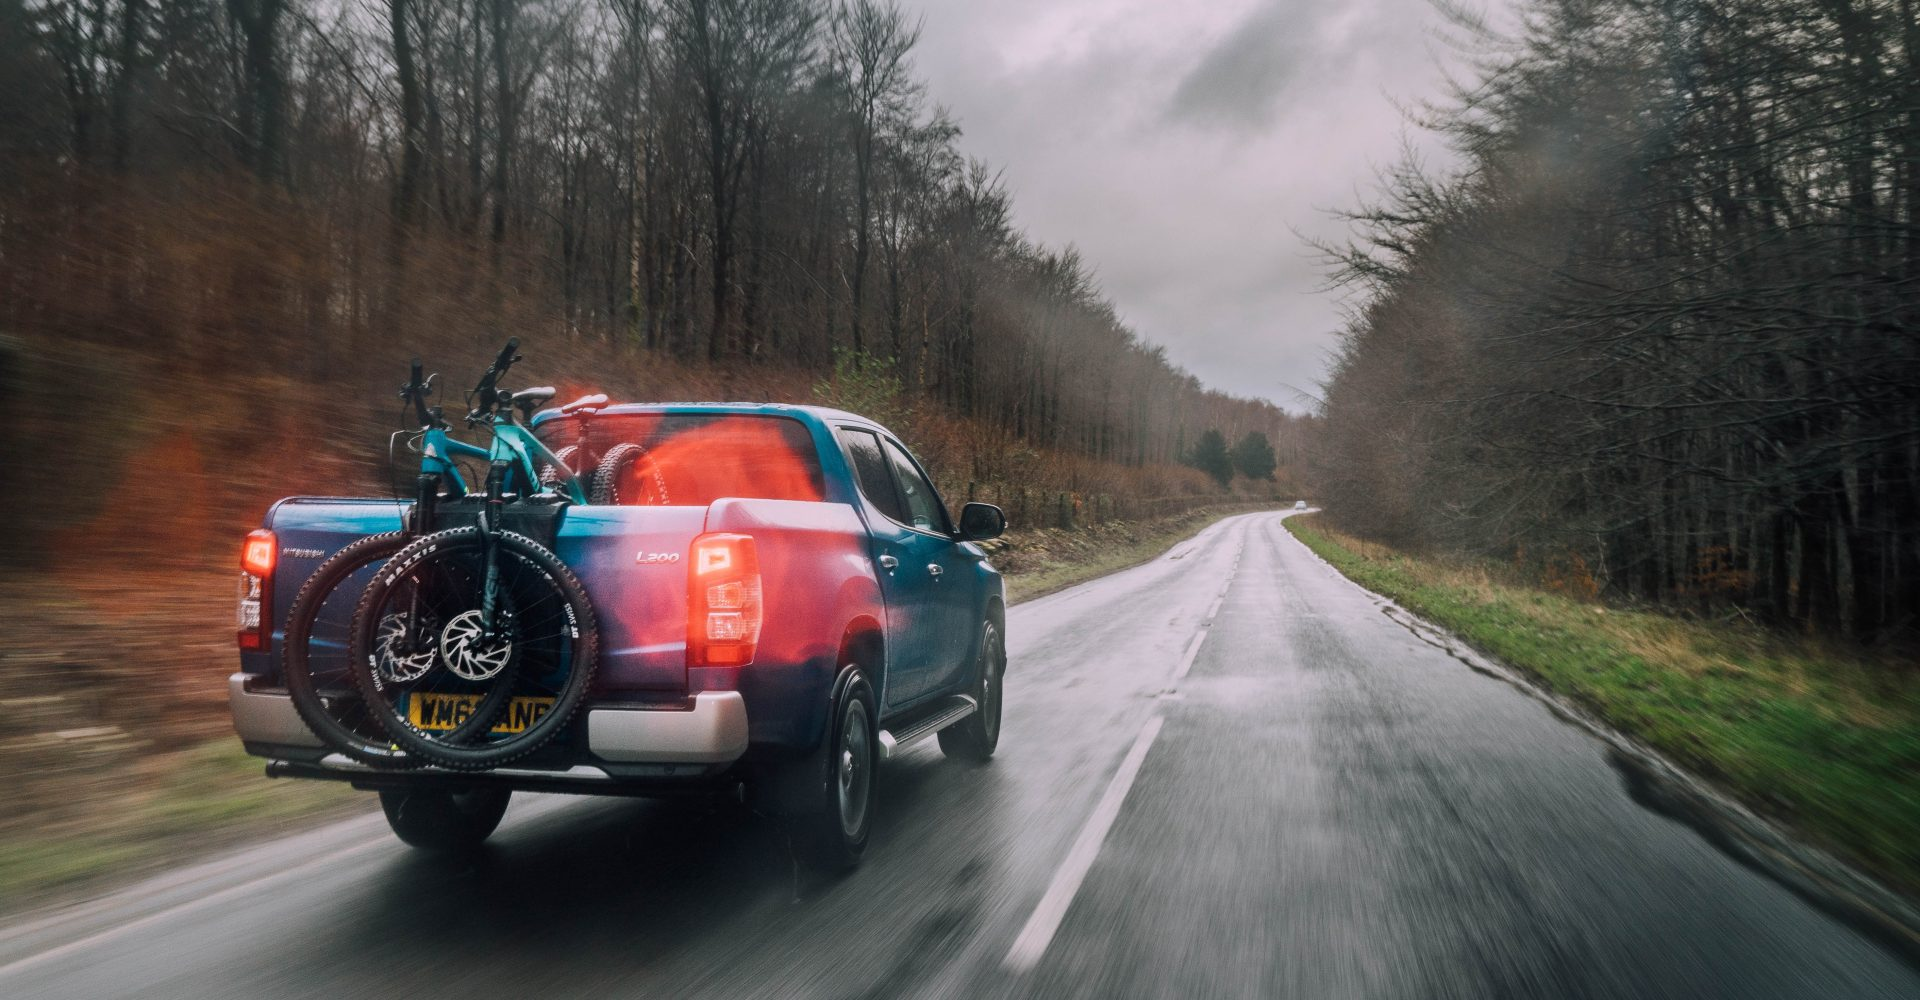 Evoc Tailgate Pad Duo review: The perfect mountain bike transport solution?